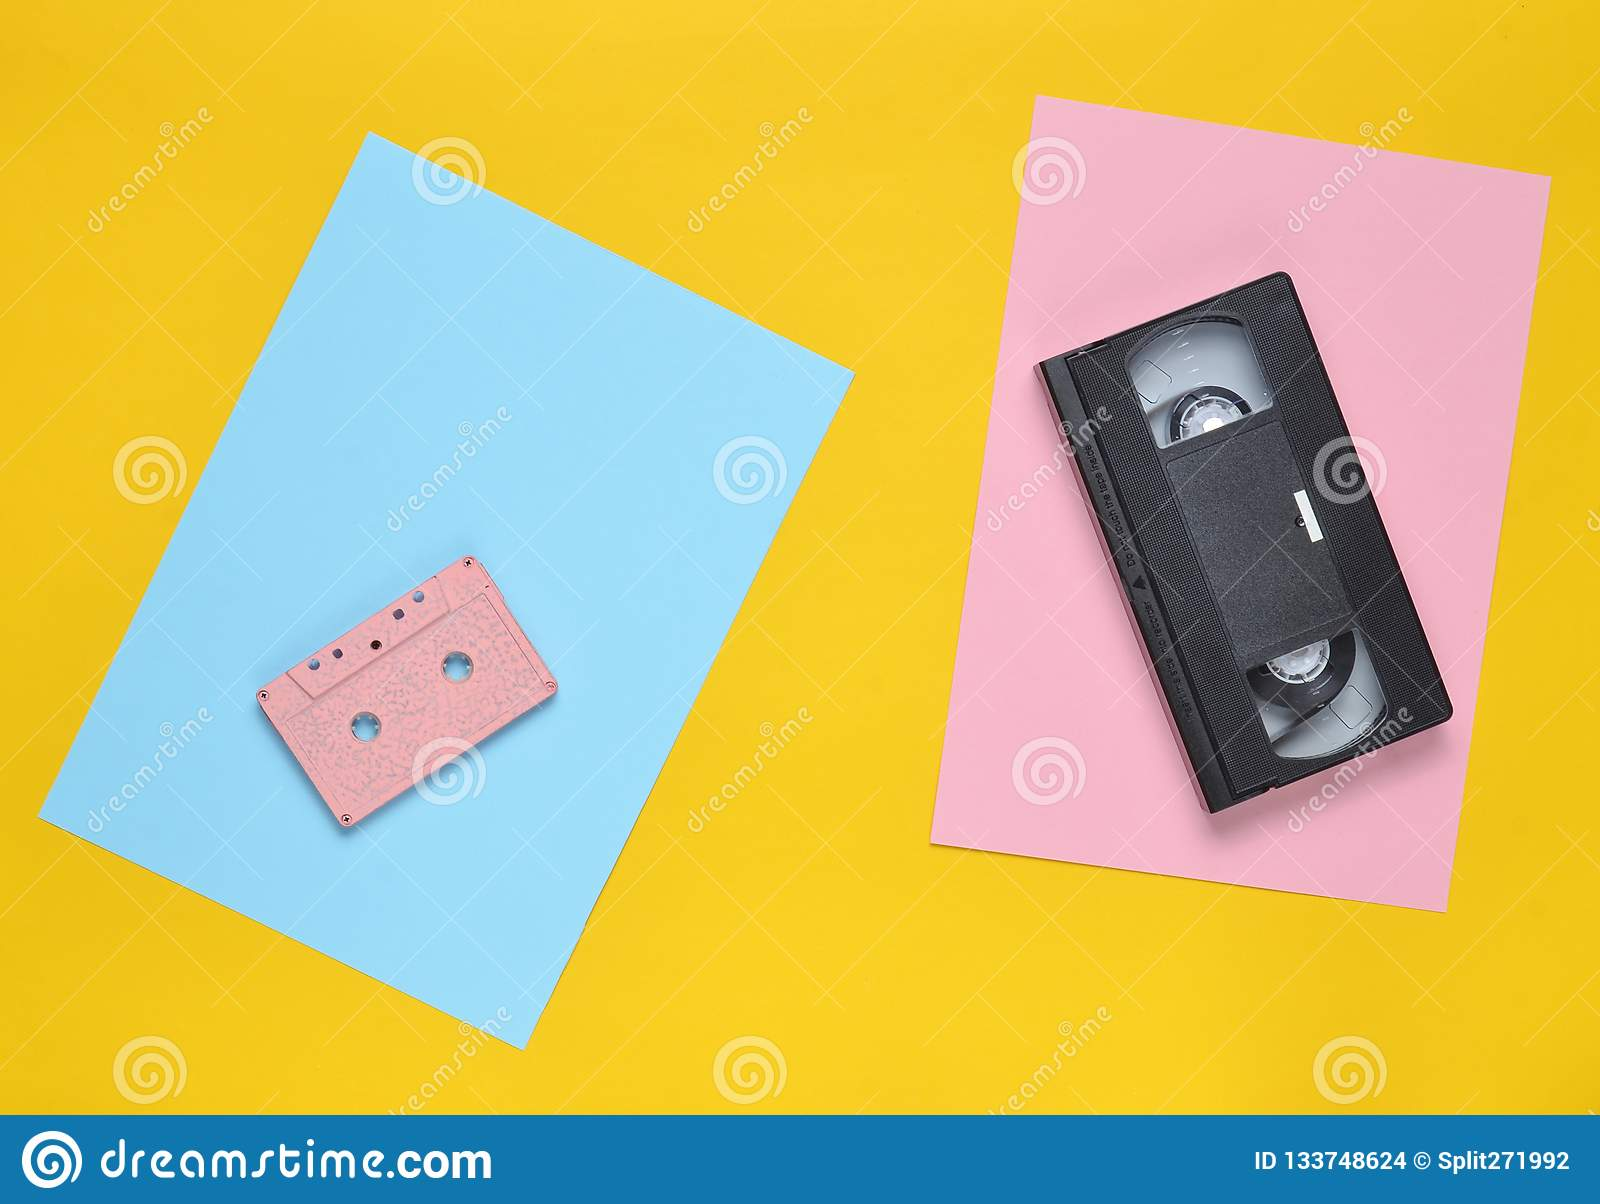 Audio Cassette And Video Cassette On A Colored Paper